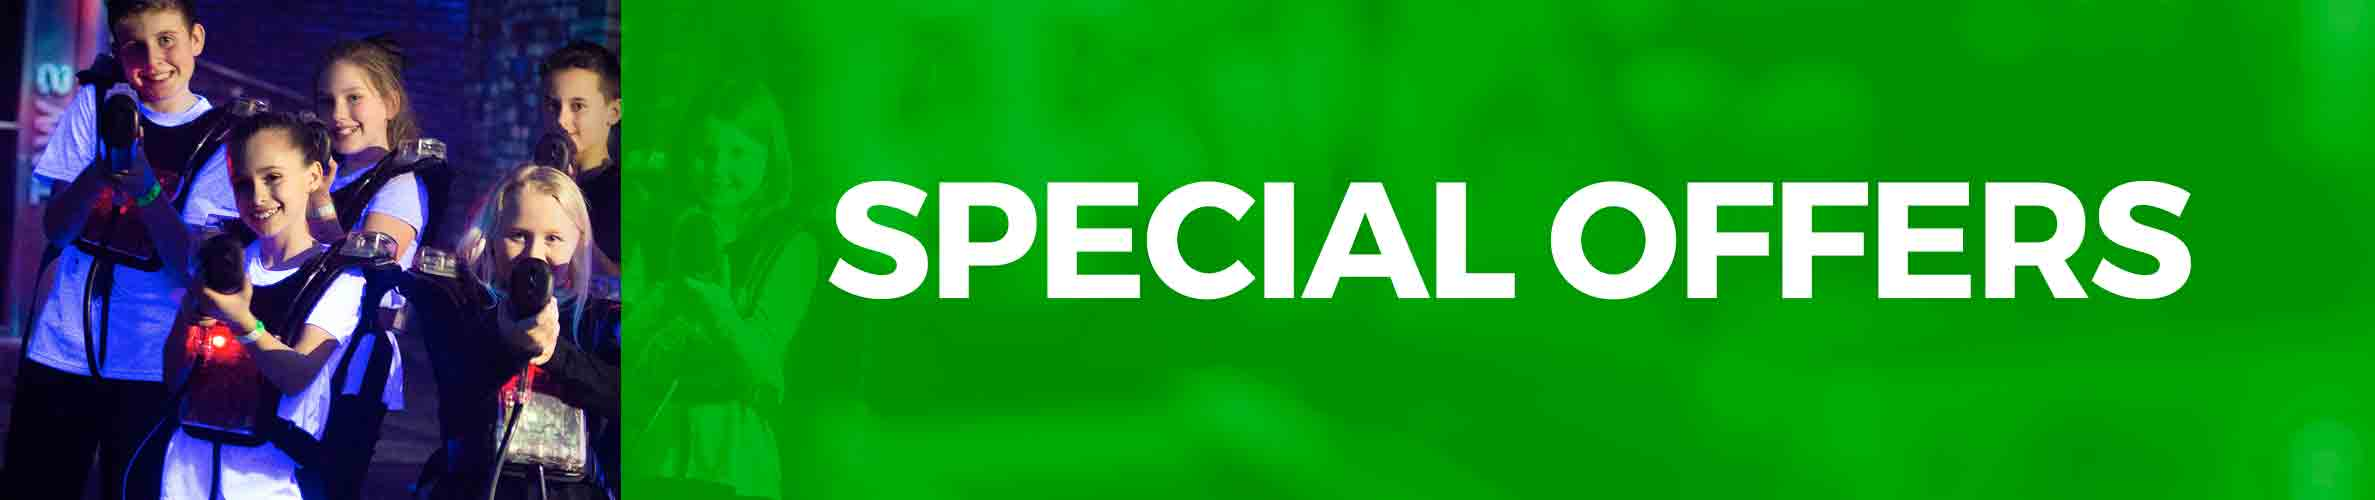 Special Offers at Skatetown Hysteria